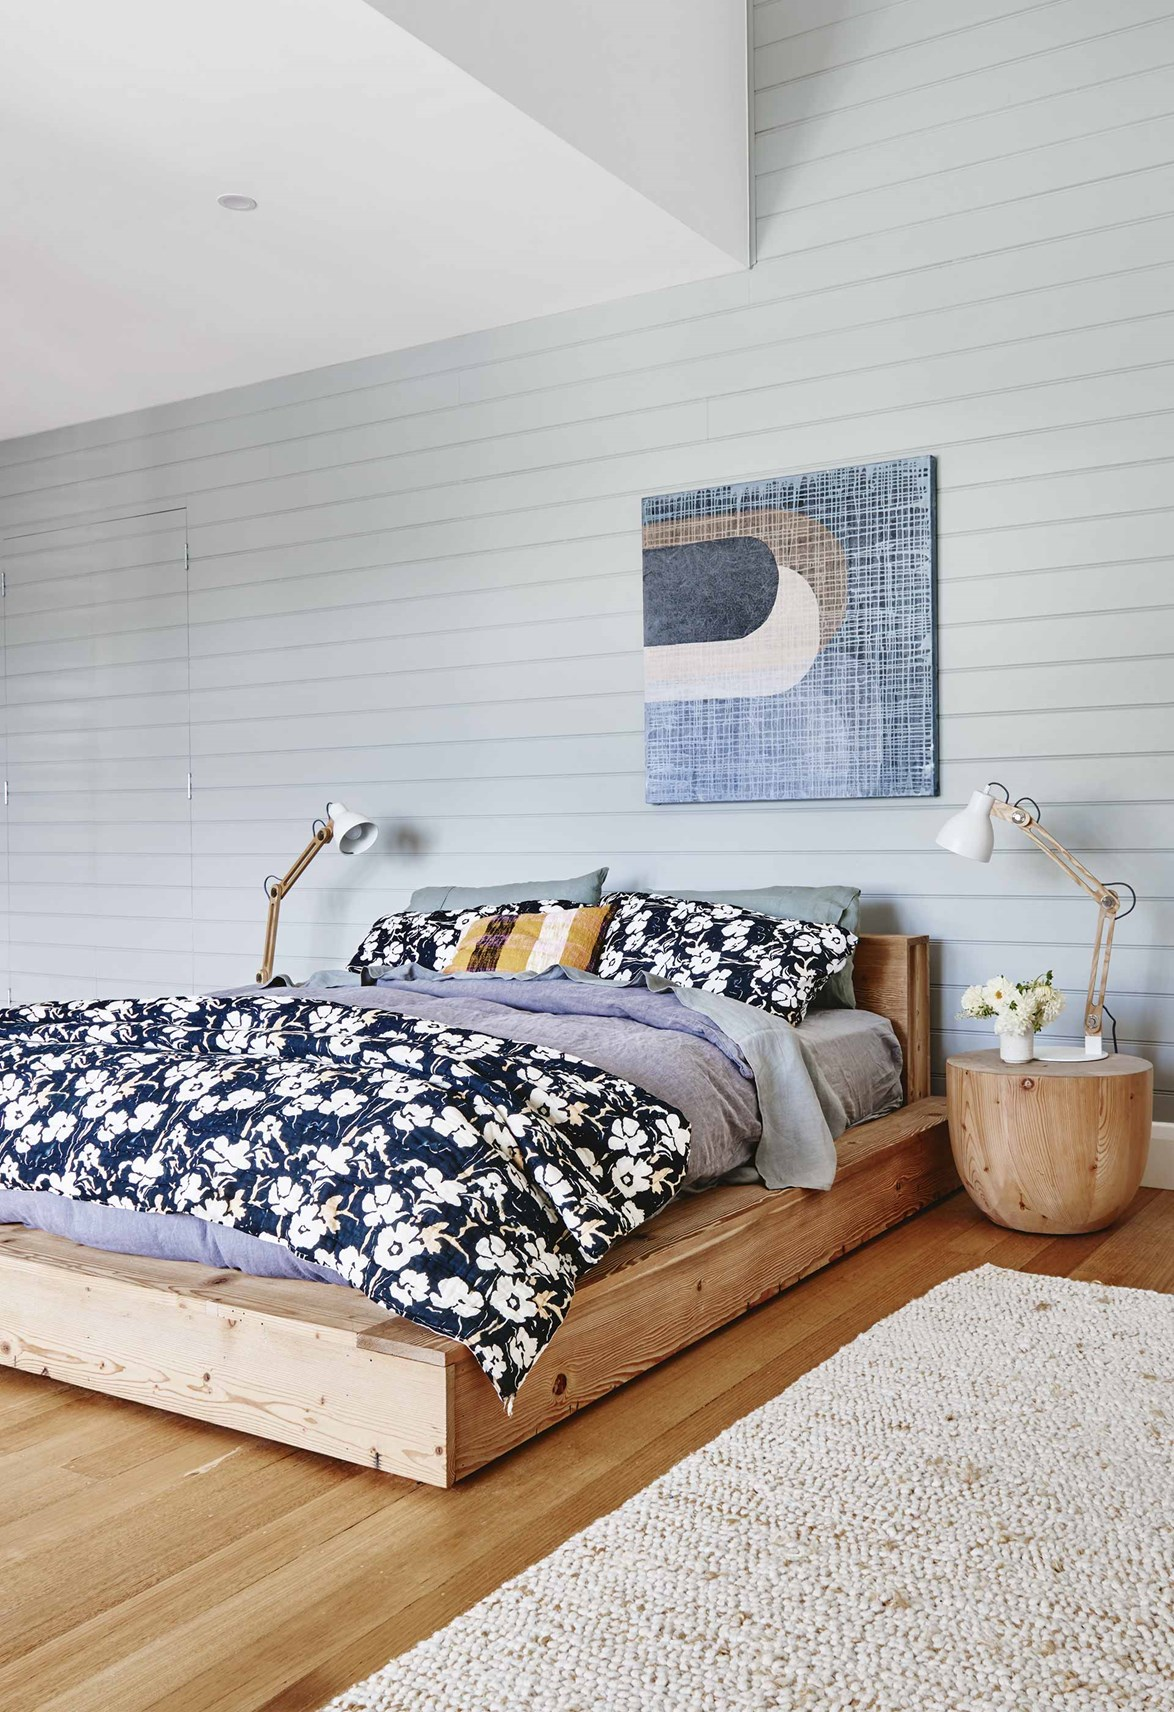 Symmetry and flow in the bedroom are essential for good energy flow.